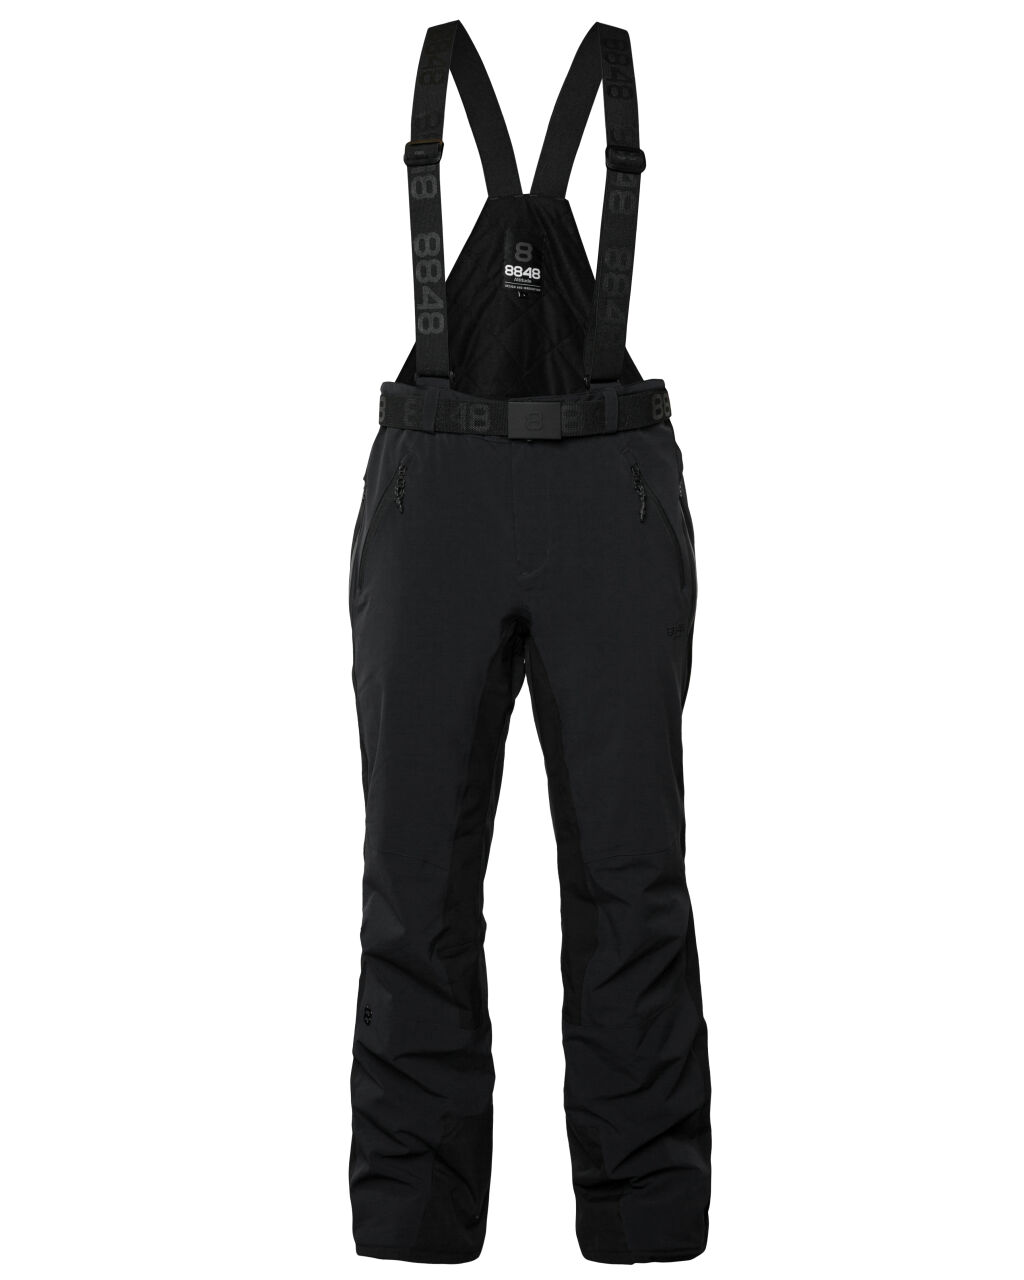 8848 Altitude Rothorn Pants M